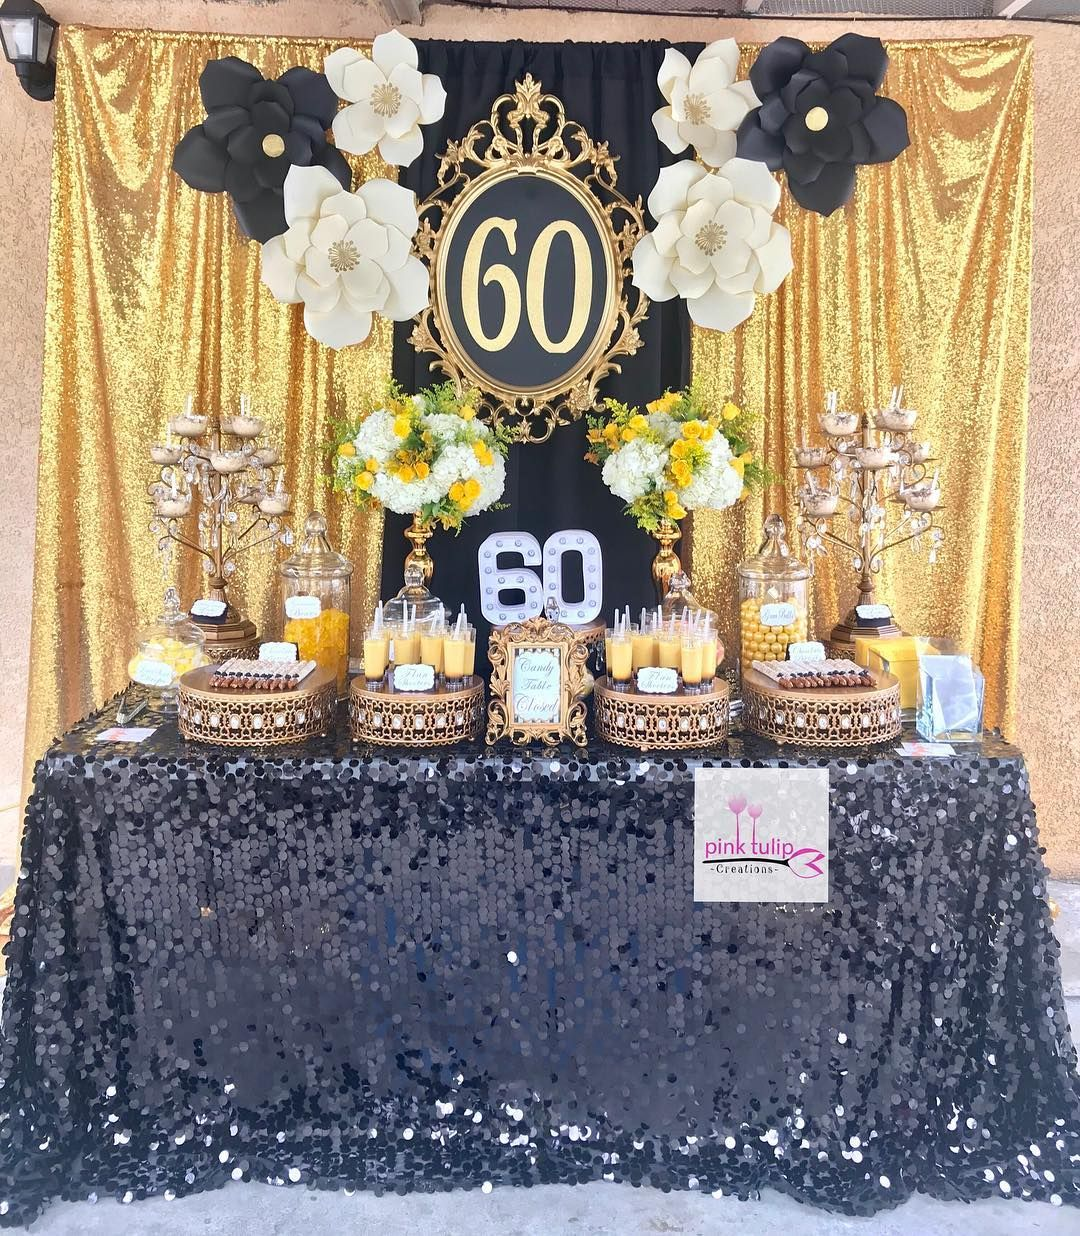 Pinktulipcreations Birthday Dessert Table Decorated In Black And Gold With Dessert Table Birthday 60th Birthday Party Decorations 60th Birthday Ideas For Mom